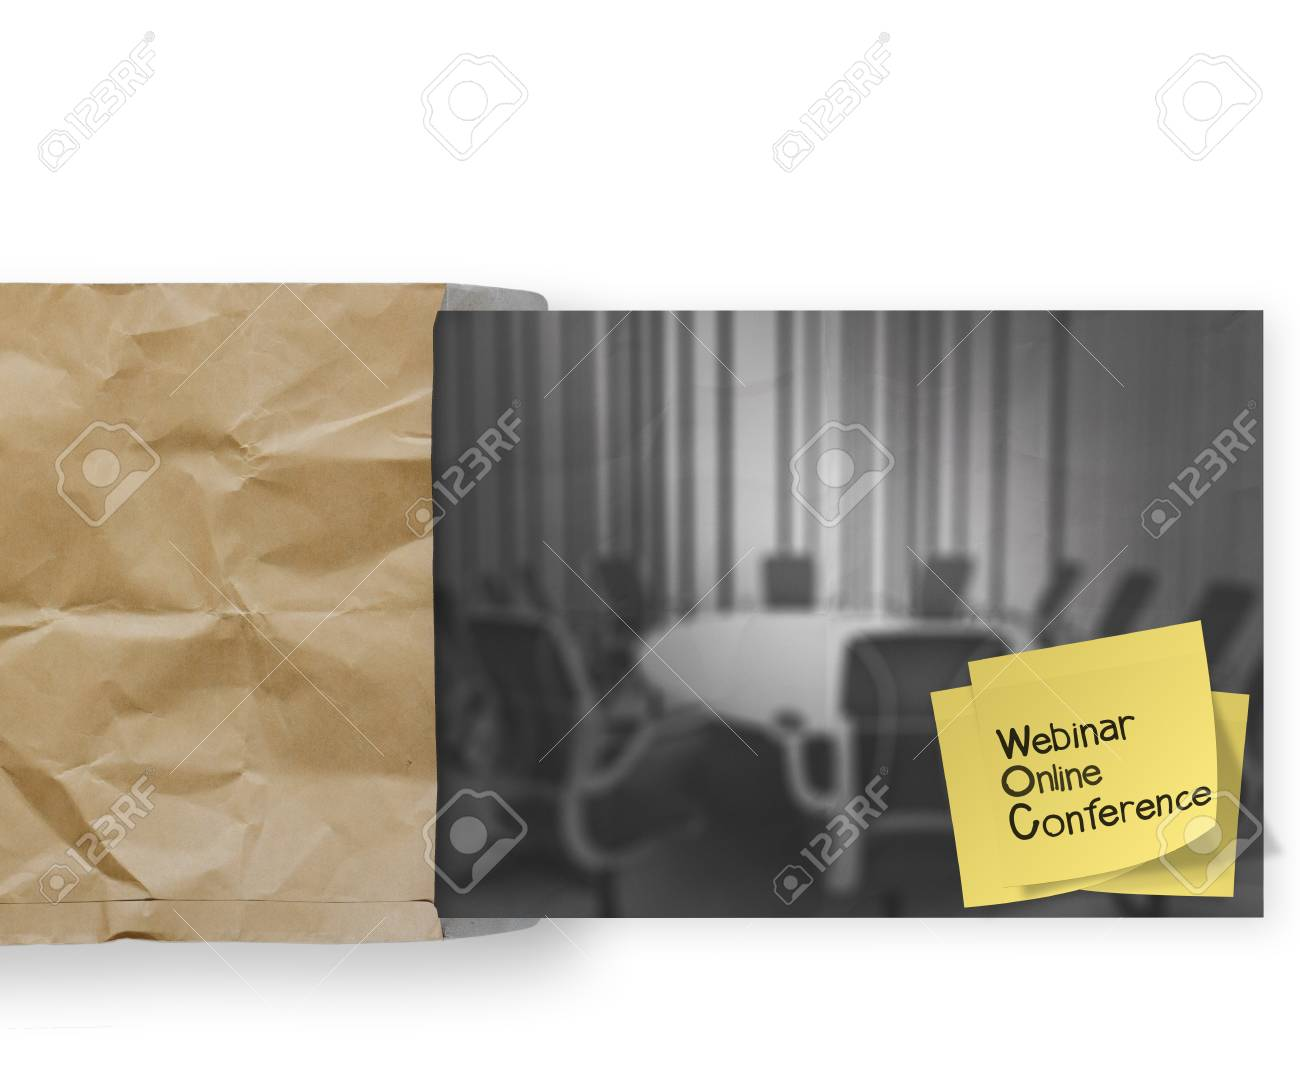 Webinar with sticky note on crumpled envelope paper background as concept Stock Photo - 22852572